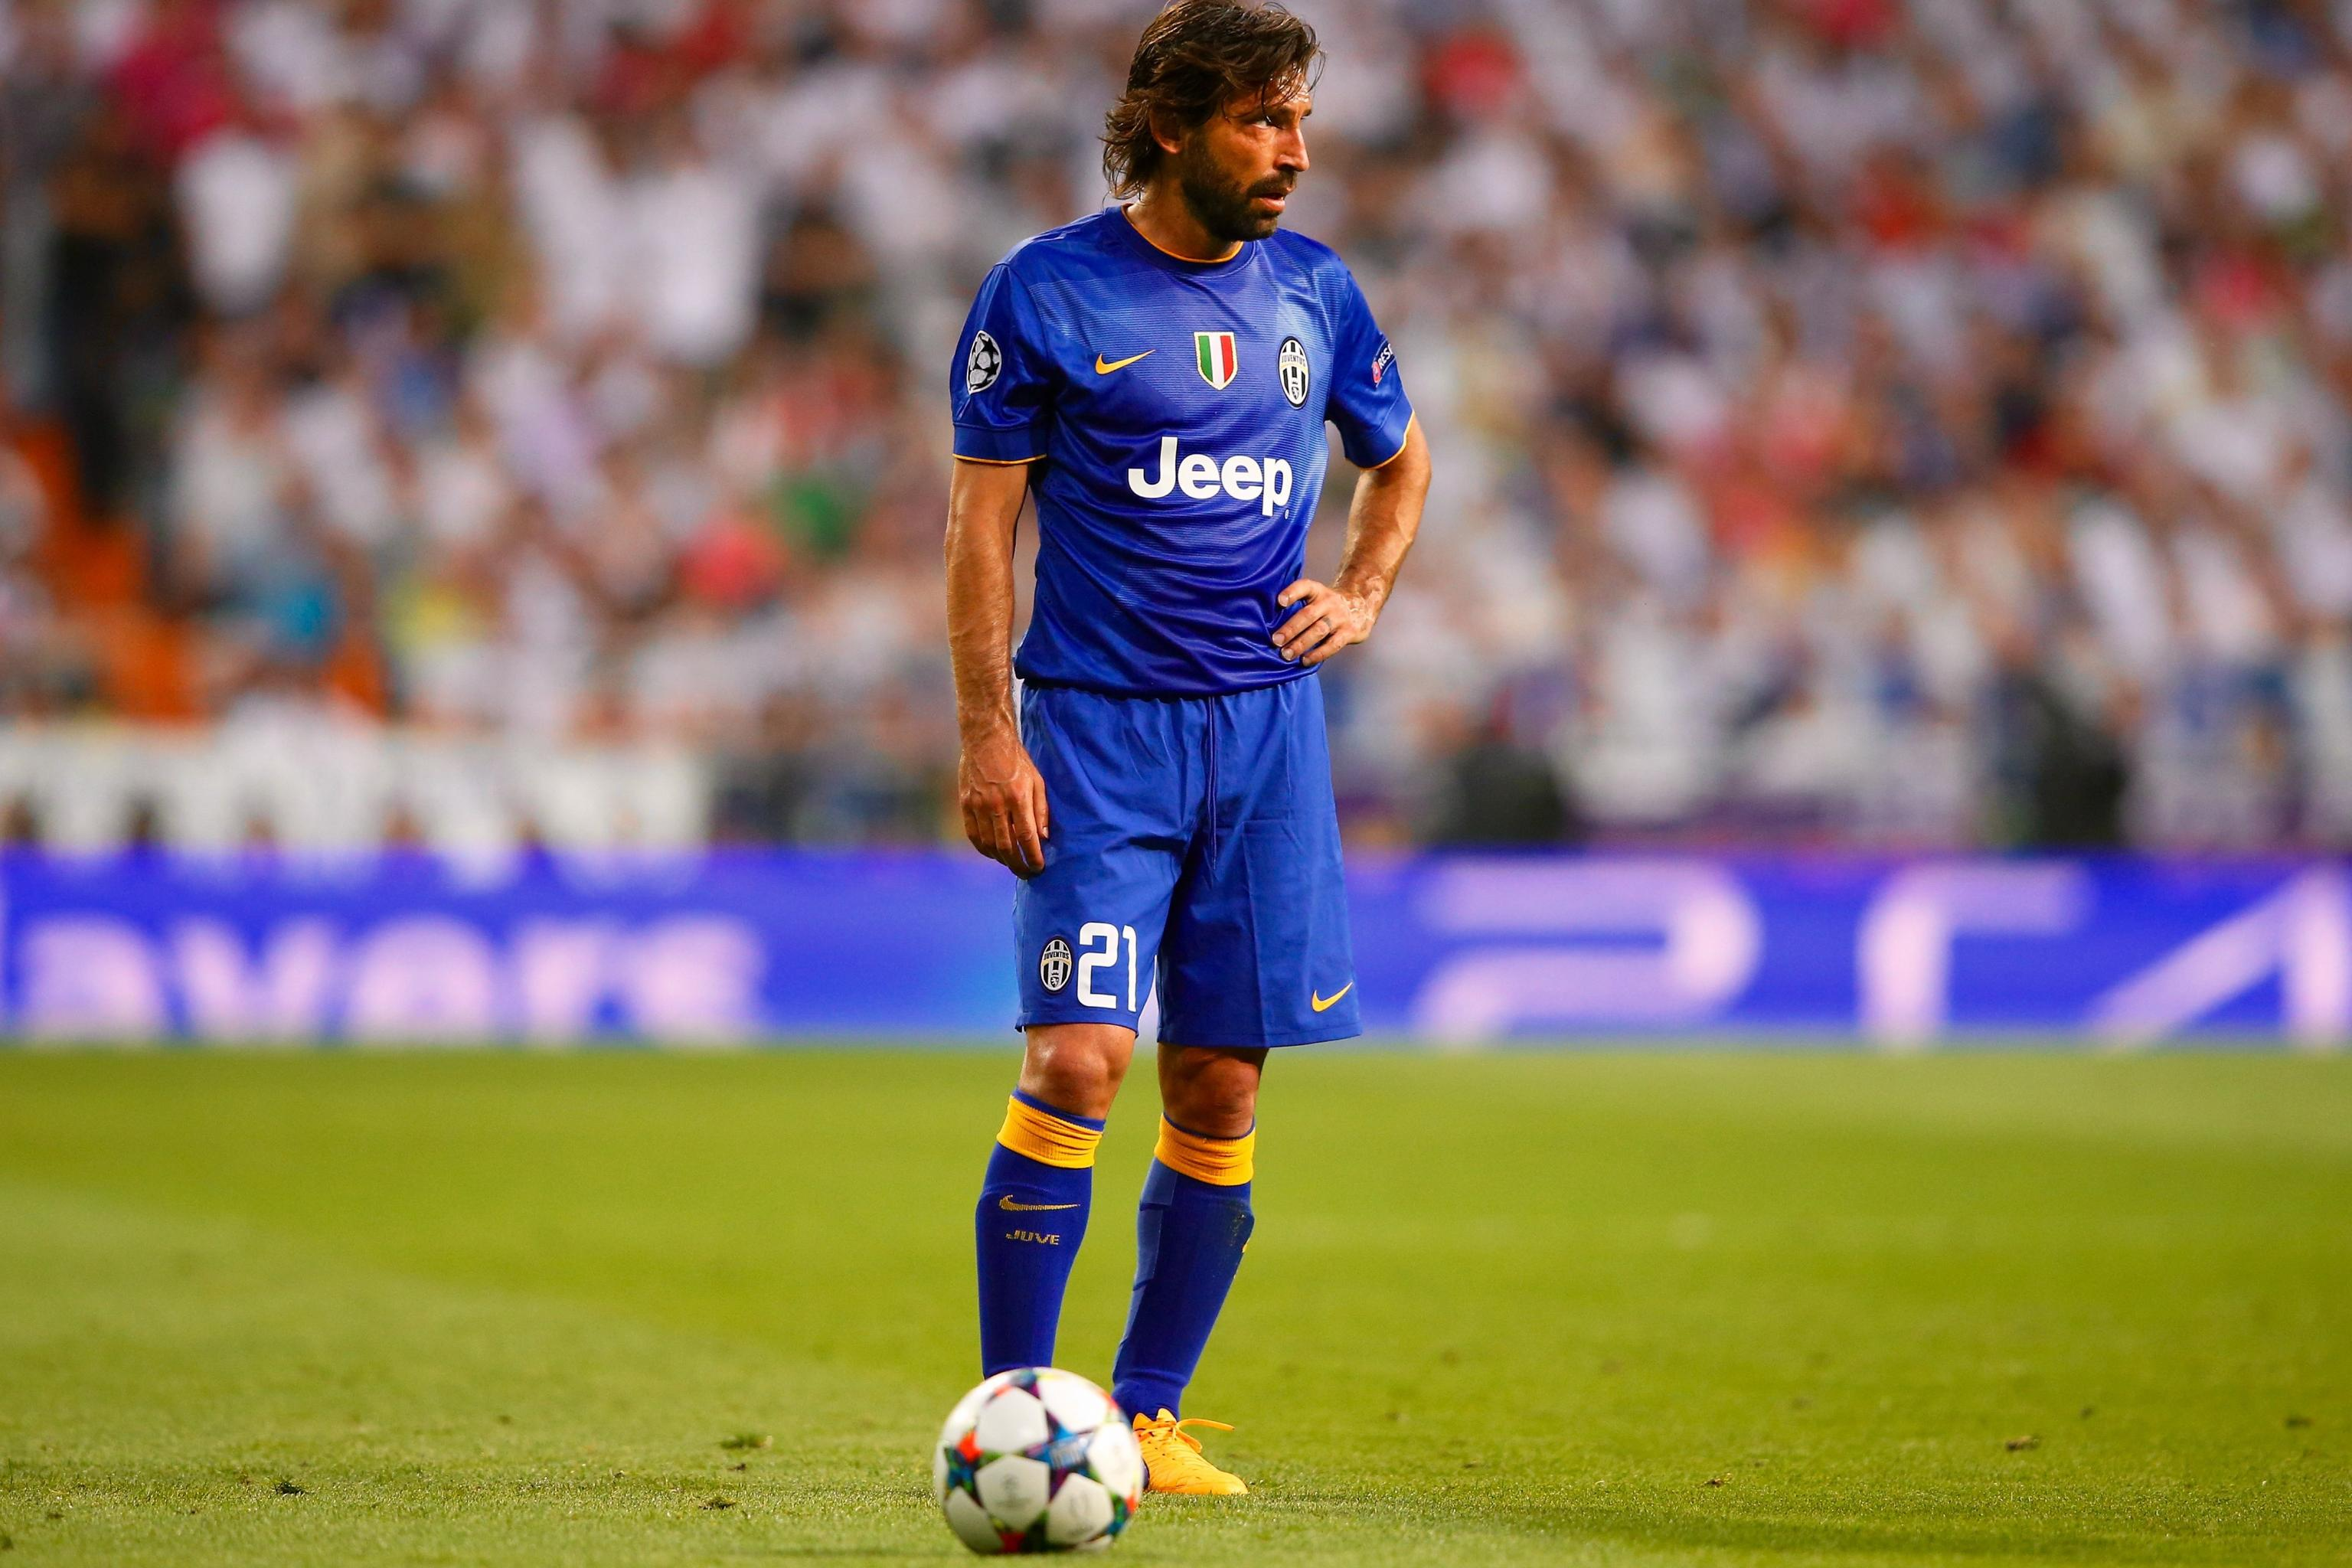 Andrea Pirlo Officially Leaves Juventus For New York City Fc Bleacher Report Latest News Videos And Highlights